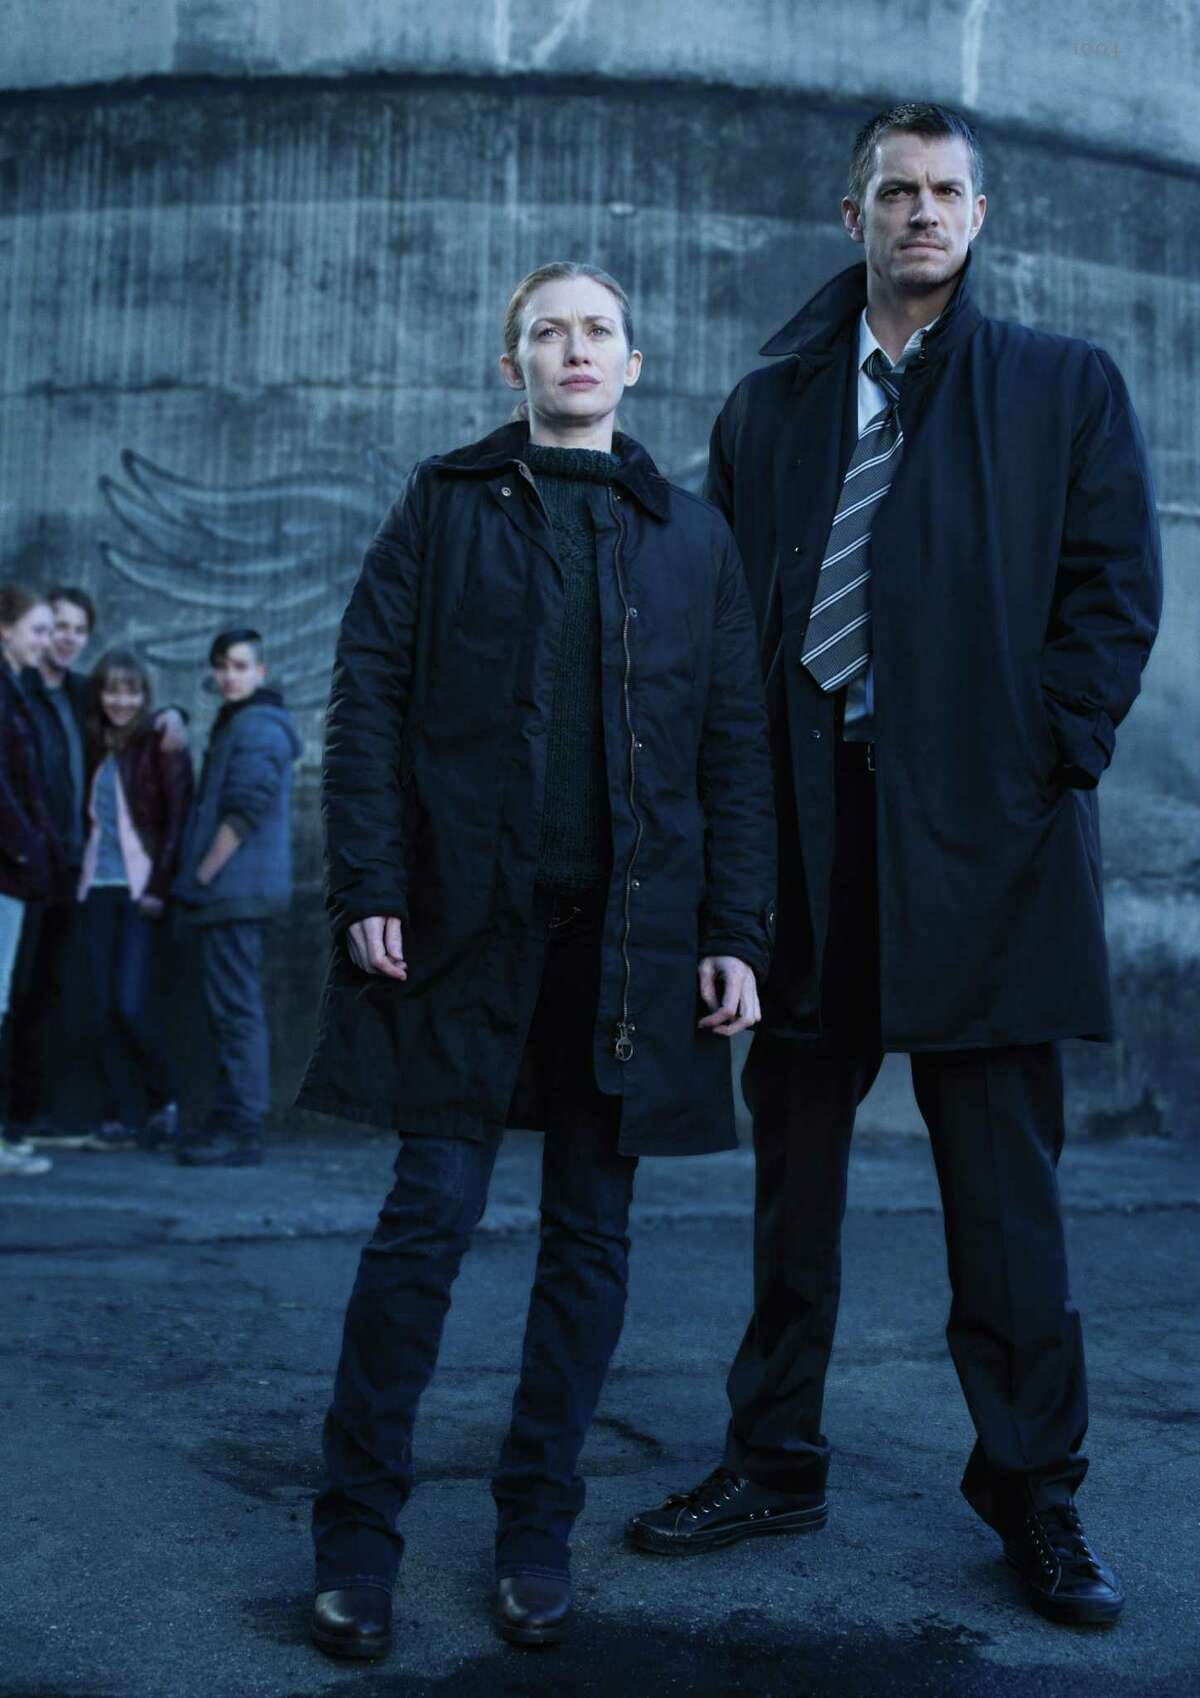 """Kallie Leeds (Cate Sproule) Twitch (Max Fowler), Lyric (Julia Sarah Stone) and Bullet (Bex Taylor-Klaus), in background, and Sarah Linden (Mireille Enos), foreground left, and Stephen Holder (Joel Kinnaman) star in AMC's, """"The Killing,"""" Season 3. (Frank Ockenfels/Courtesy AMC/MCT)"""